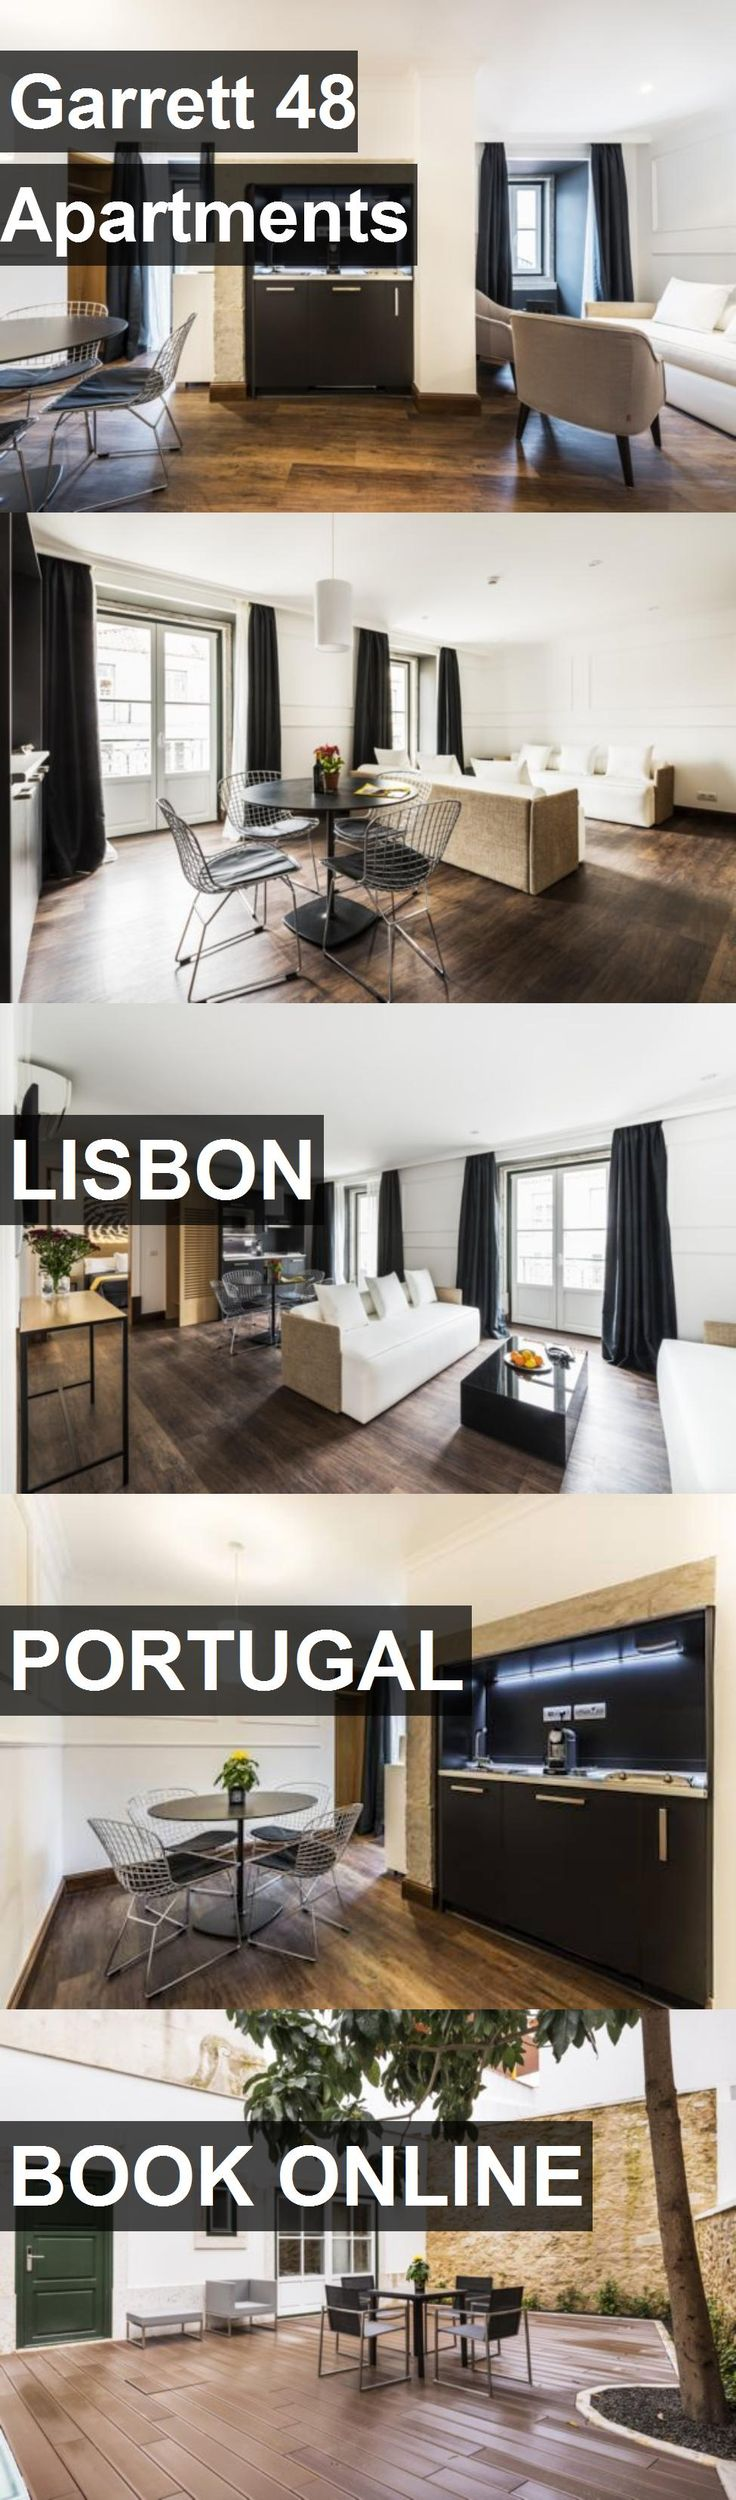 Garrett 48 Apartments in Lisbon, Portugal. For more information, photos, reviews and best prices please follow the link. #Portugal #Lisbon #travel #vacation #apartment